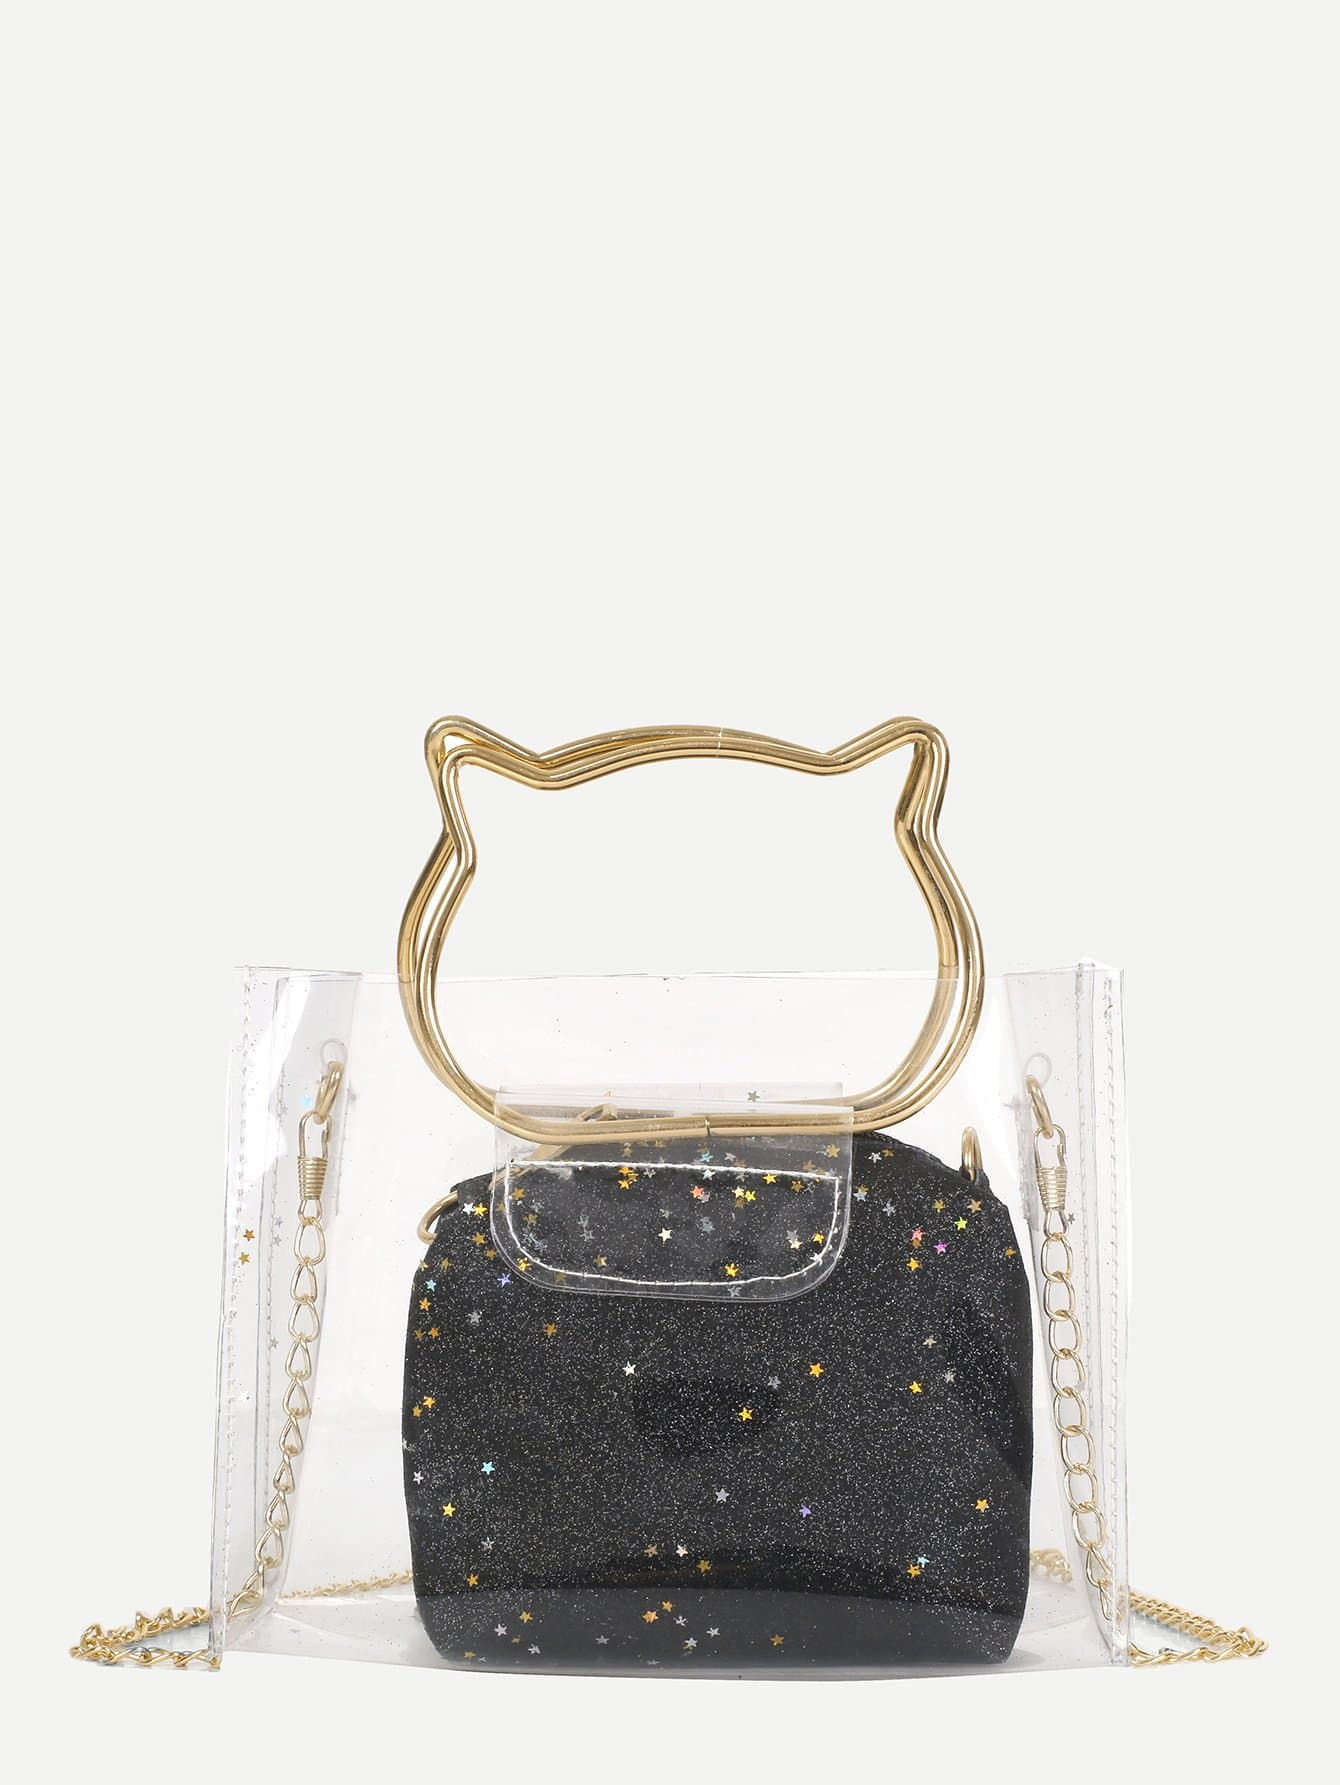 Clear PVC Bag With Glitter Inner Pouch clear design chain bag with inner pouch